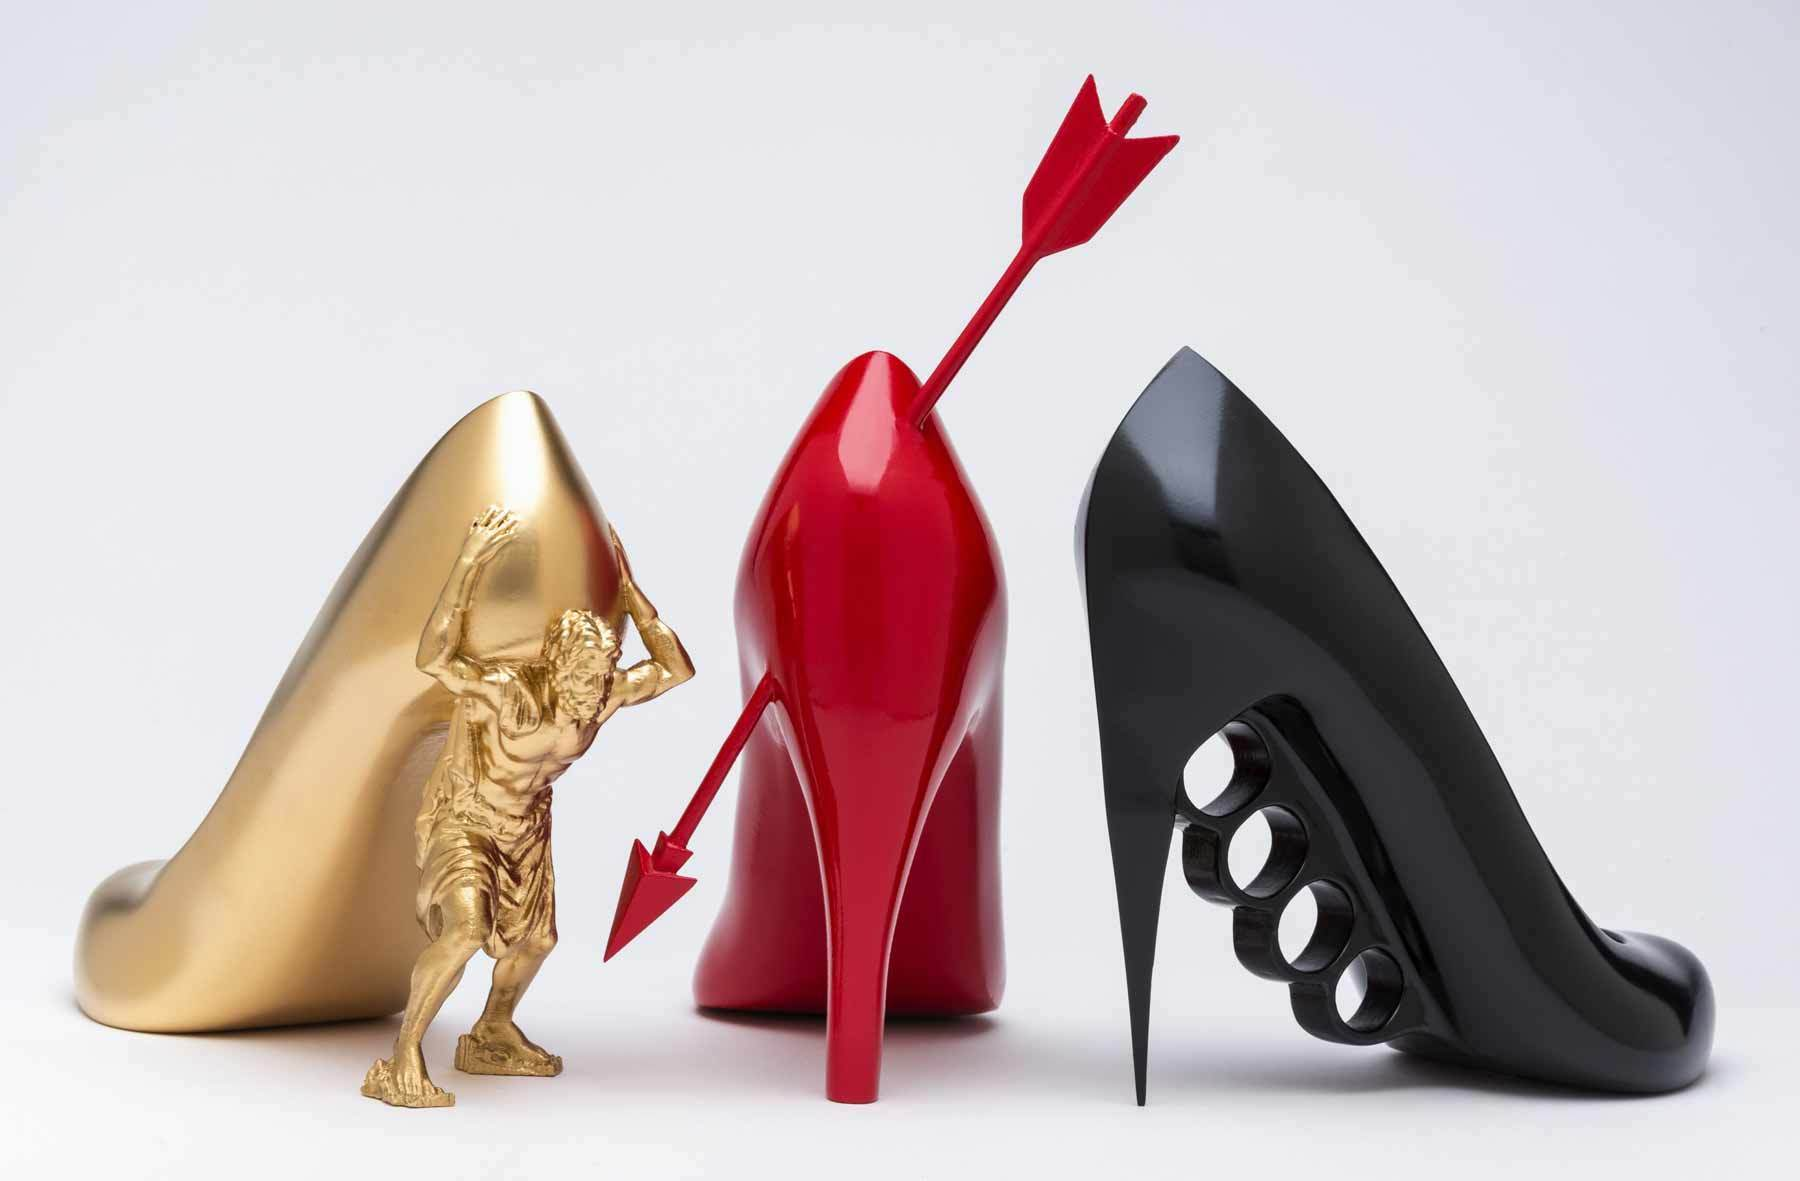 Sebastian Errazuriz, The Boss, The Golddigger and The Heartbreaker